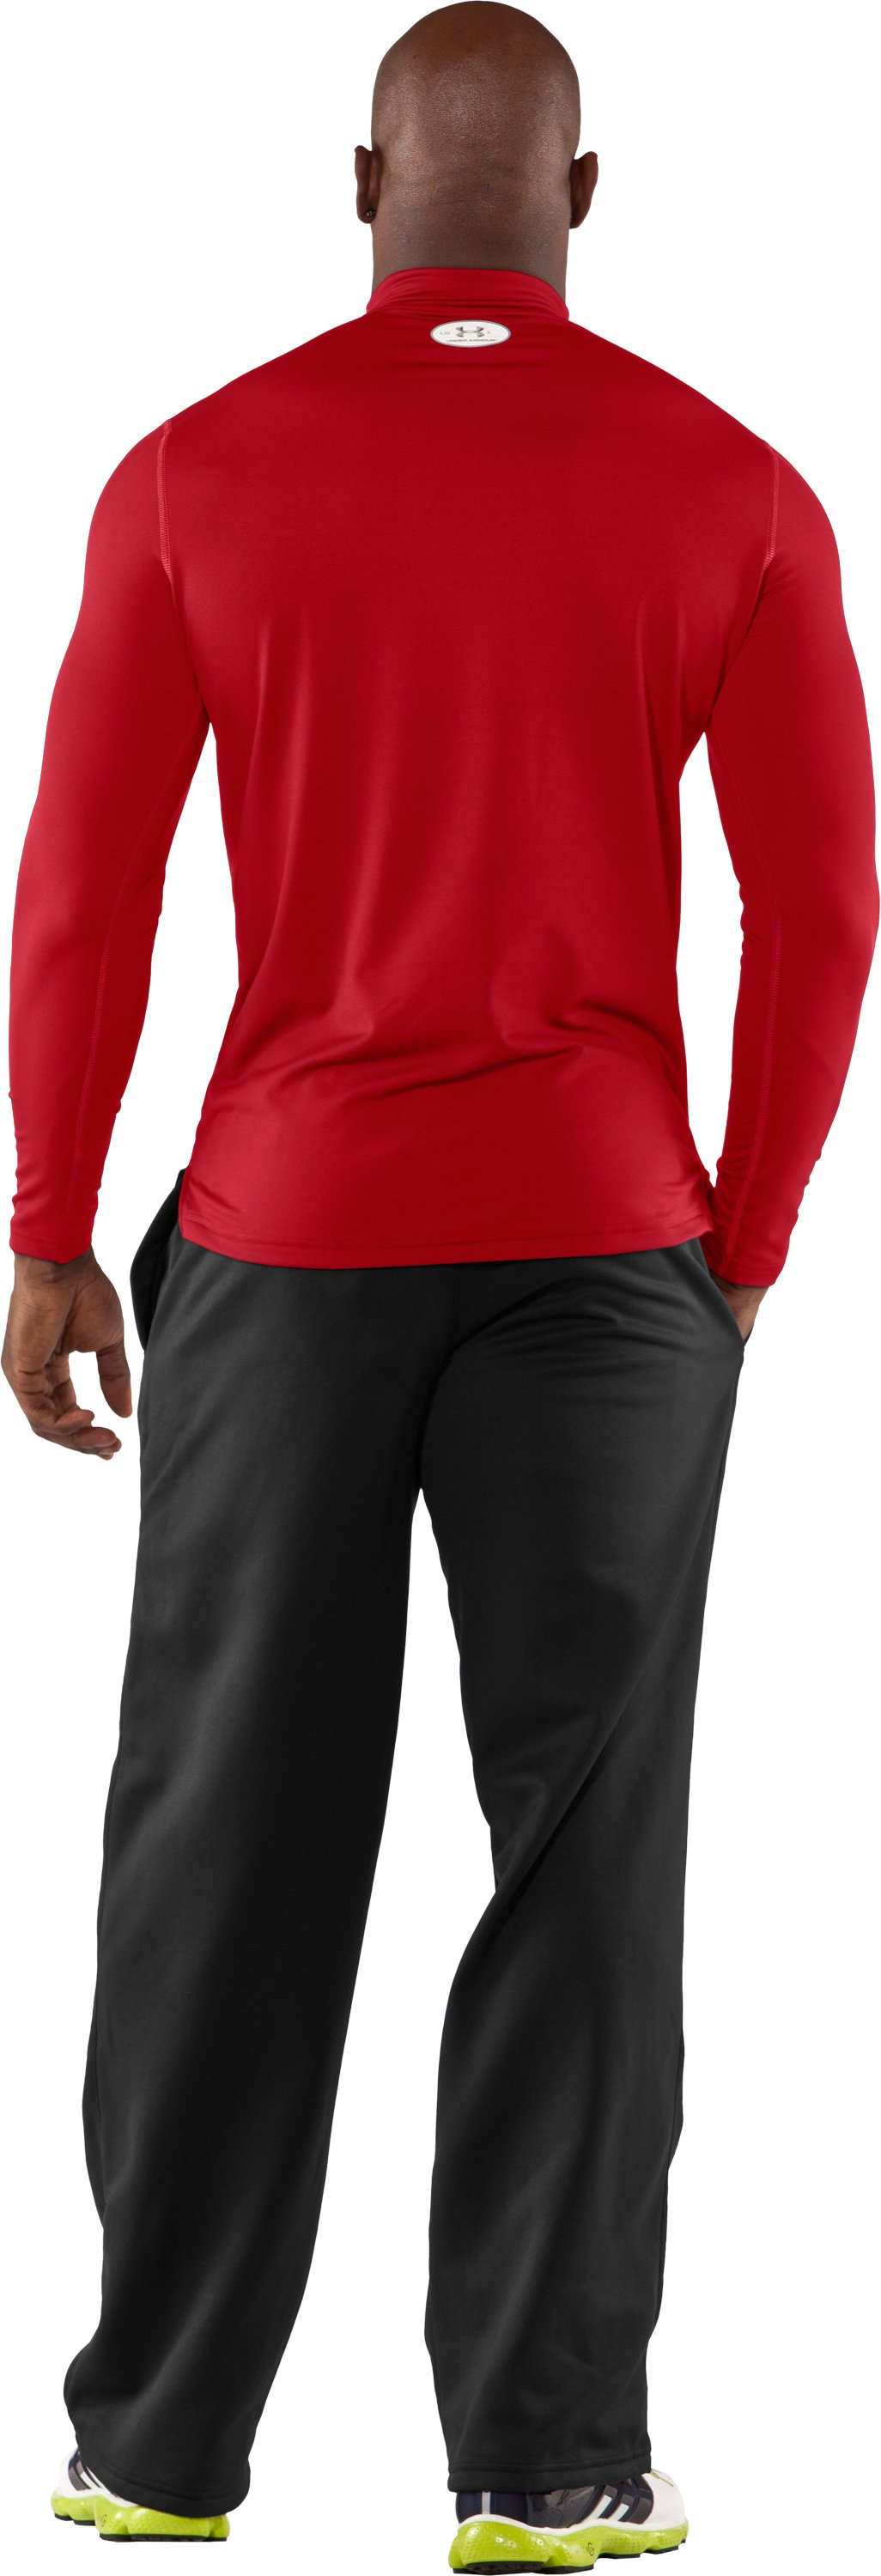 Men's ColdGear® Fitted Long Sleeve Mock, Red, Back